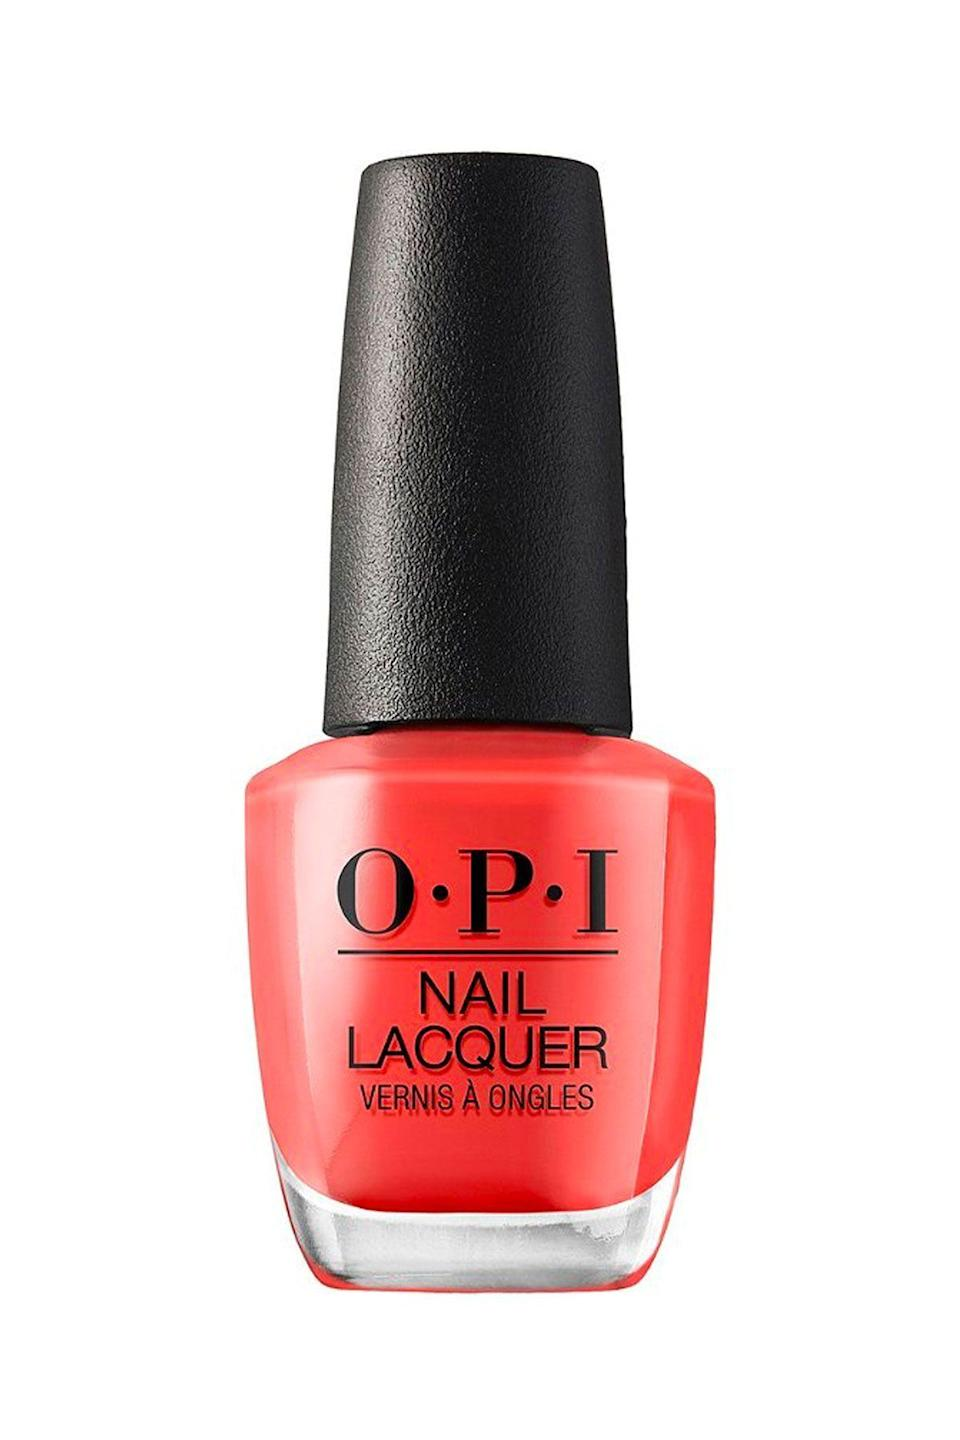 """<p><strong>OPI</strong></p><p>ulta.com</p><p><strong>$10.50</strong></p><p><a href=""""https://go.redirectingat.com?id=74968X1596630&url=https%3A%2F%2Fwww.ulta.com%2Fmexico-city-nail-lacquer-collection%3FproductId%3Dpimprod2013284&sref=https%3A%2F%2Fwww.seventeen.com%2Fbeauty%2Fnails%2Fg2741%2Fbest-spring-nail-colors%2F"""" rel=""""nofollow noopener"""" target=""""_blank"""" data-ylk=""""slk:SHOP NOW"""" class=""""link rapid-noclick-resp"""">SHOP NOW</a></p><p>If your go-to shade is an elegant red but the color feels a little too intense for springtime, opt for a vibrant red-orange. </p>"""